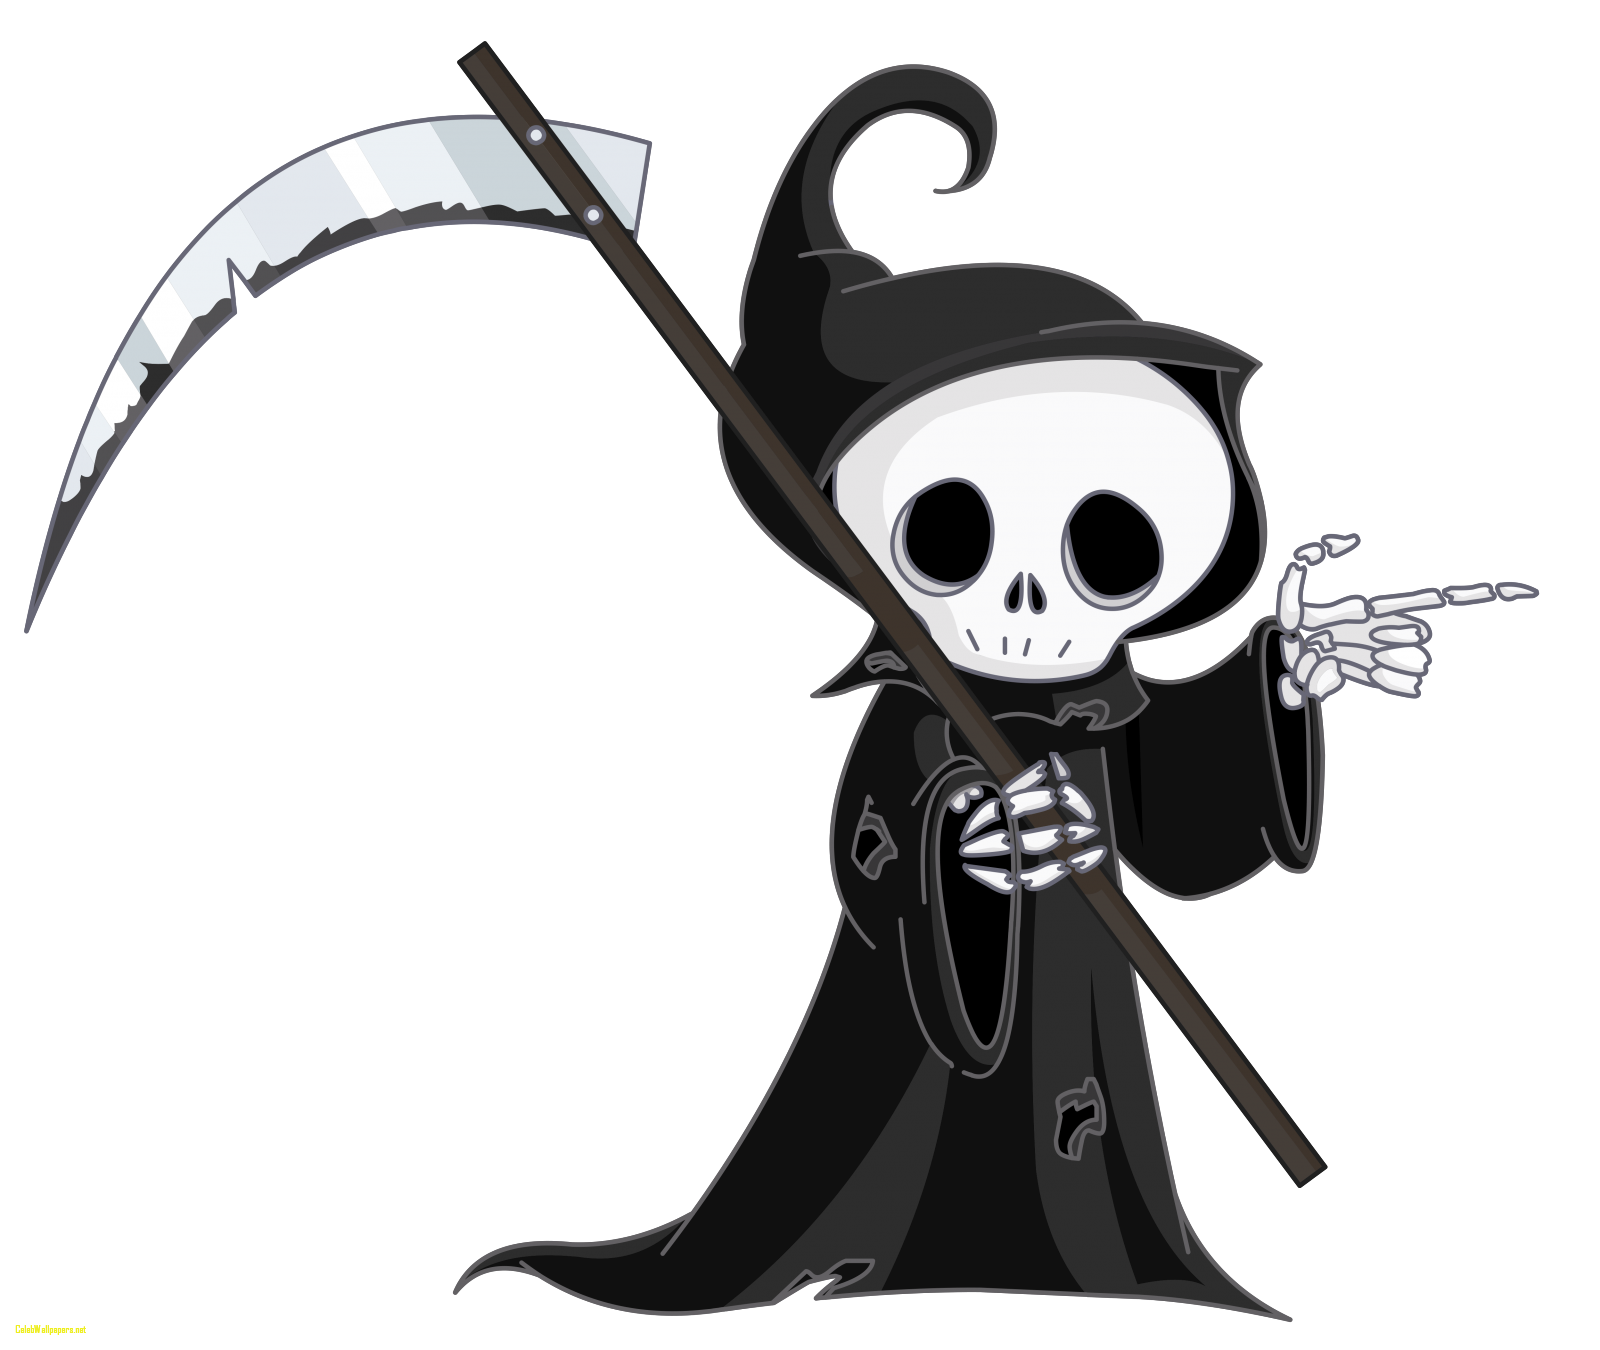 freeuse library Grimm free on dumielauxepices. Grim reaper clipart.